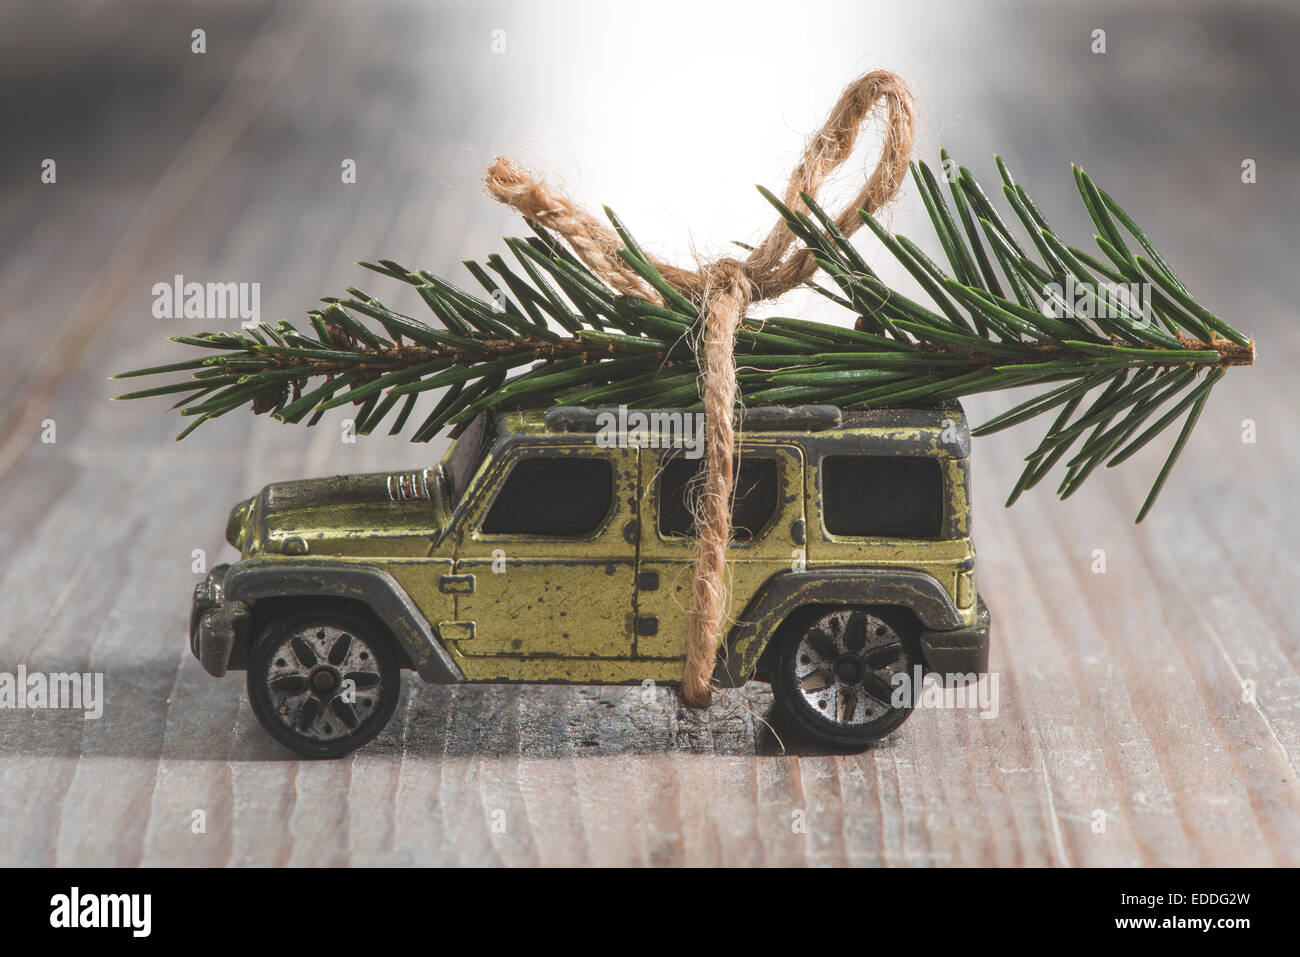 Suv Car Toy With Christmas Tree On Roof Stock Photo Royalty Free